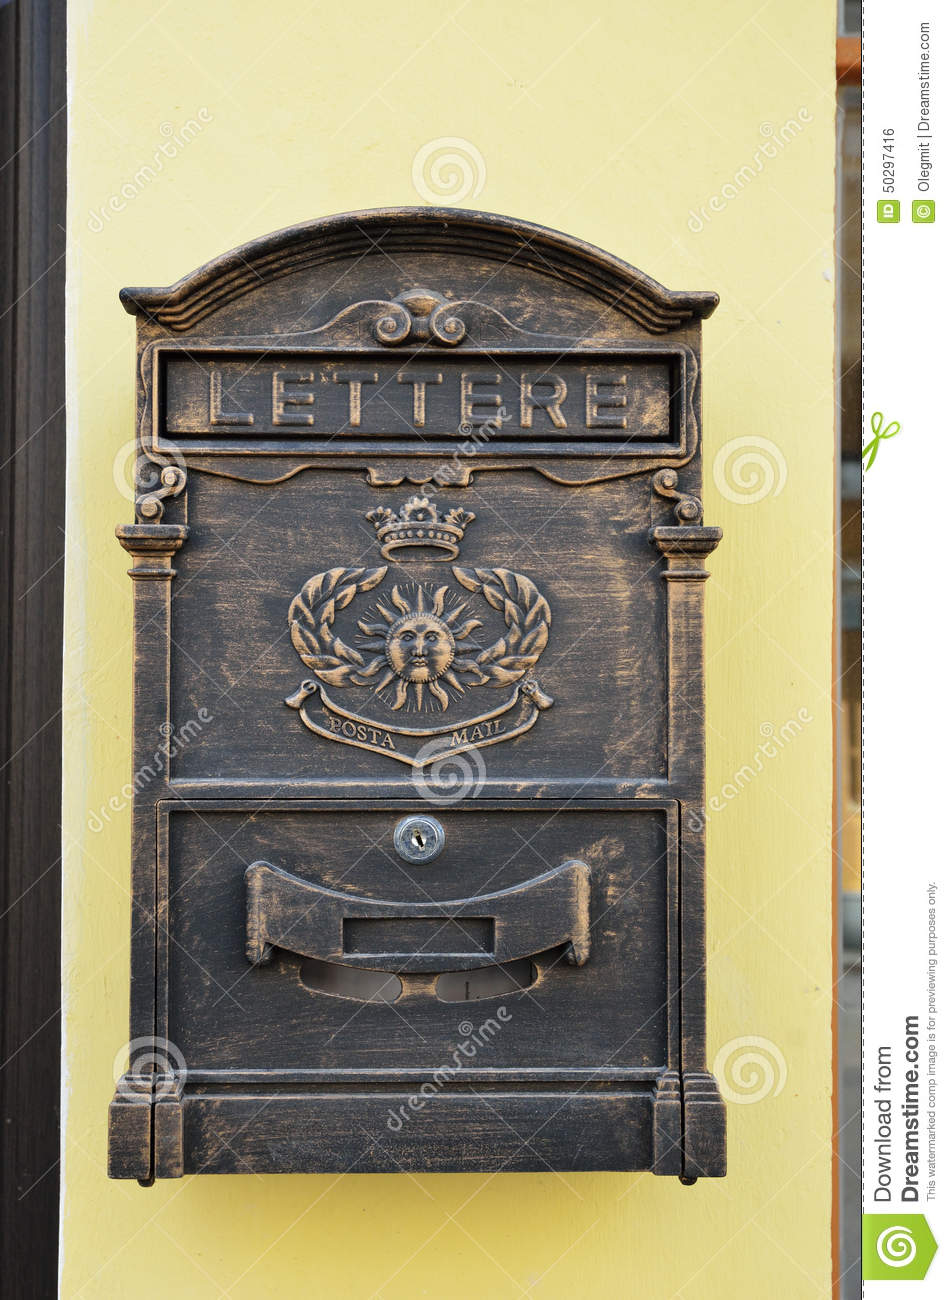 Vintage mailbox in the wall stock photo image 50297416 for What to do with old mailbox